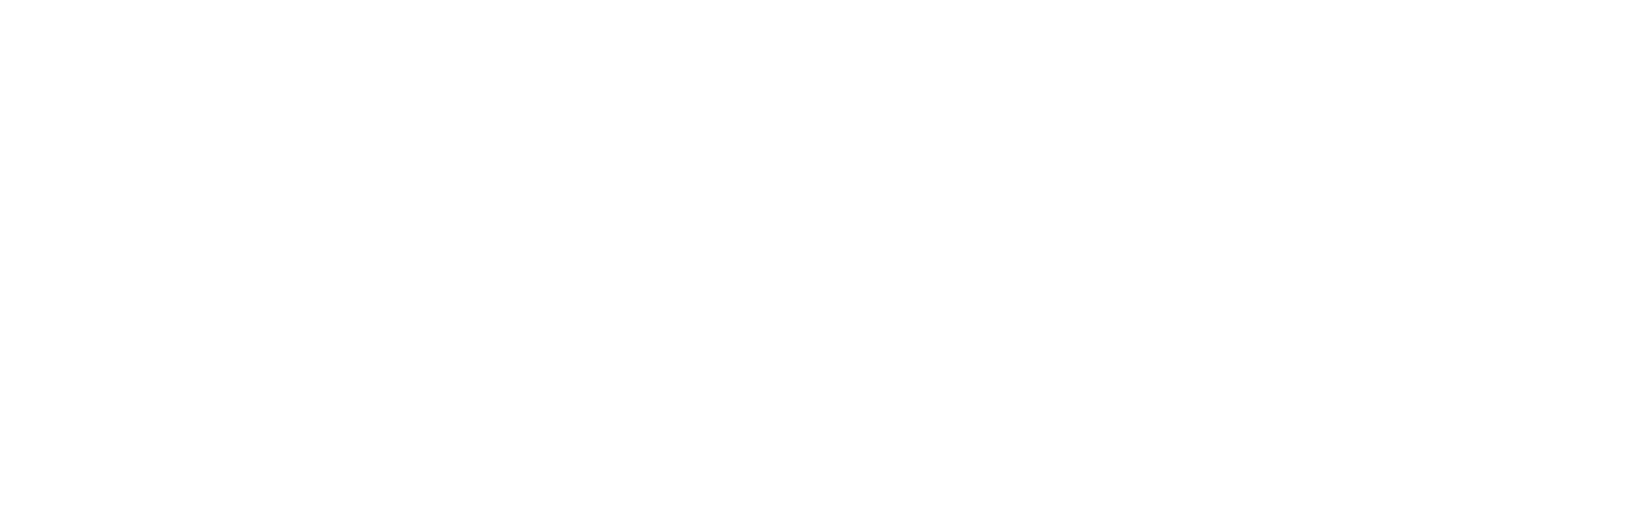 Help Winnipeggers in this global crisis